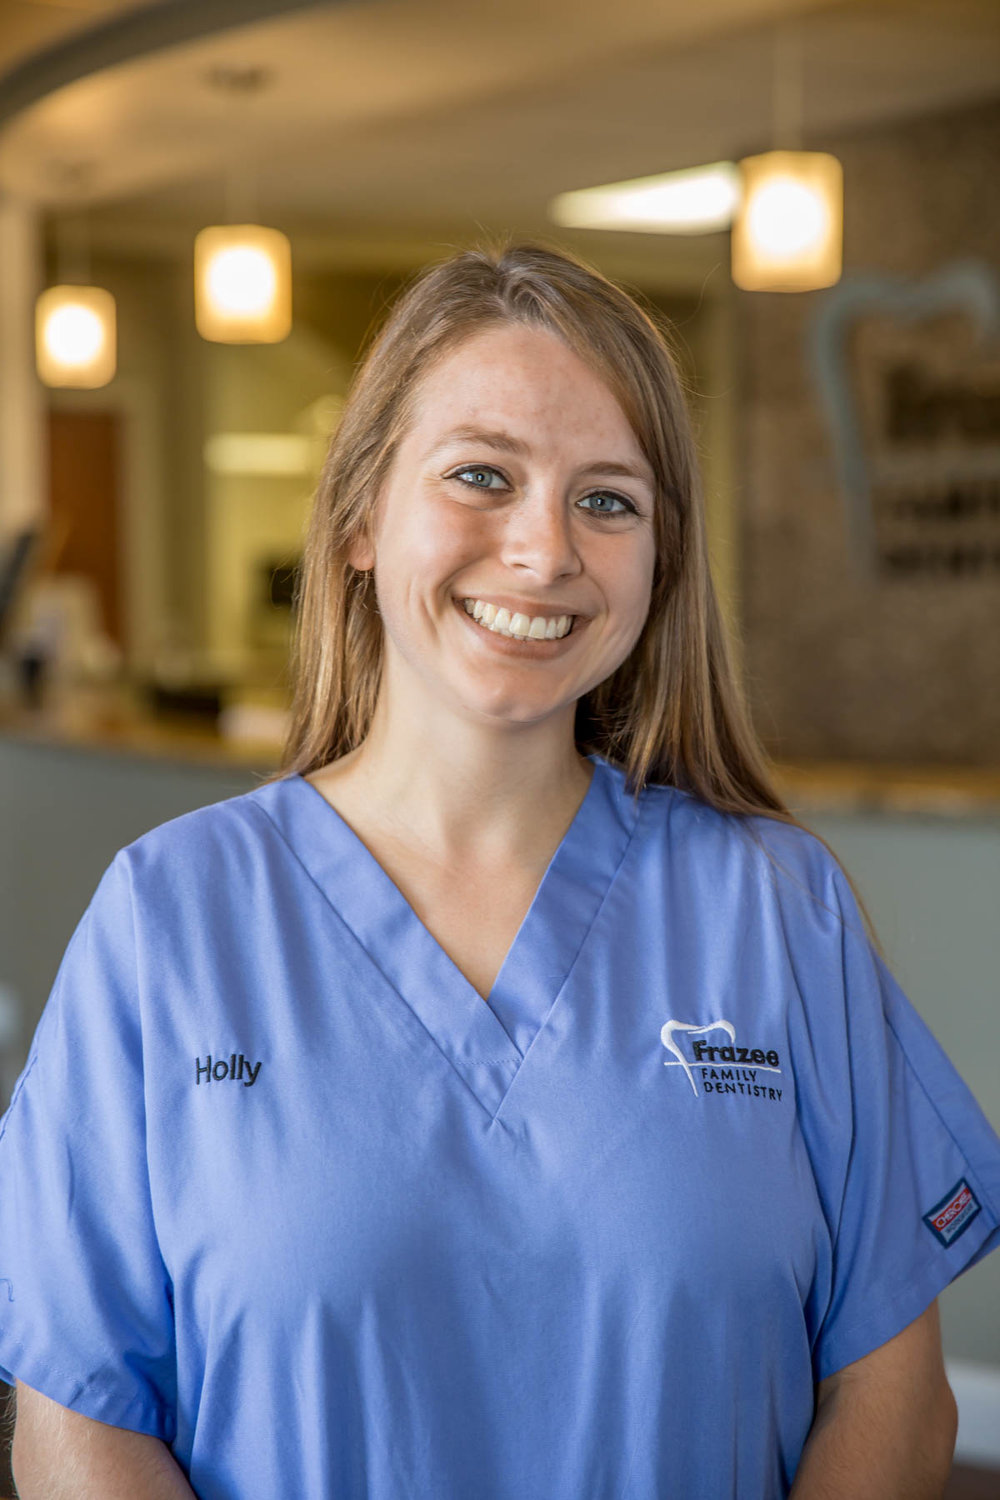 Meet Holly at Frazee Family Dentistry.